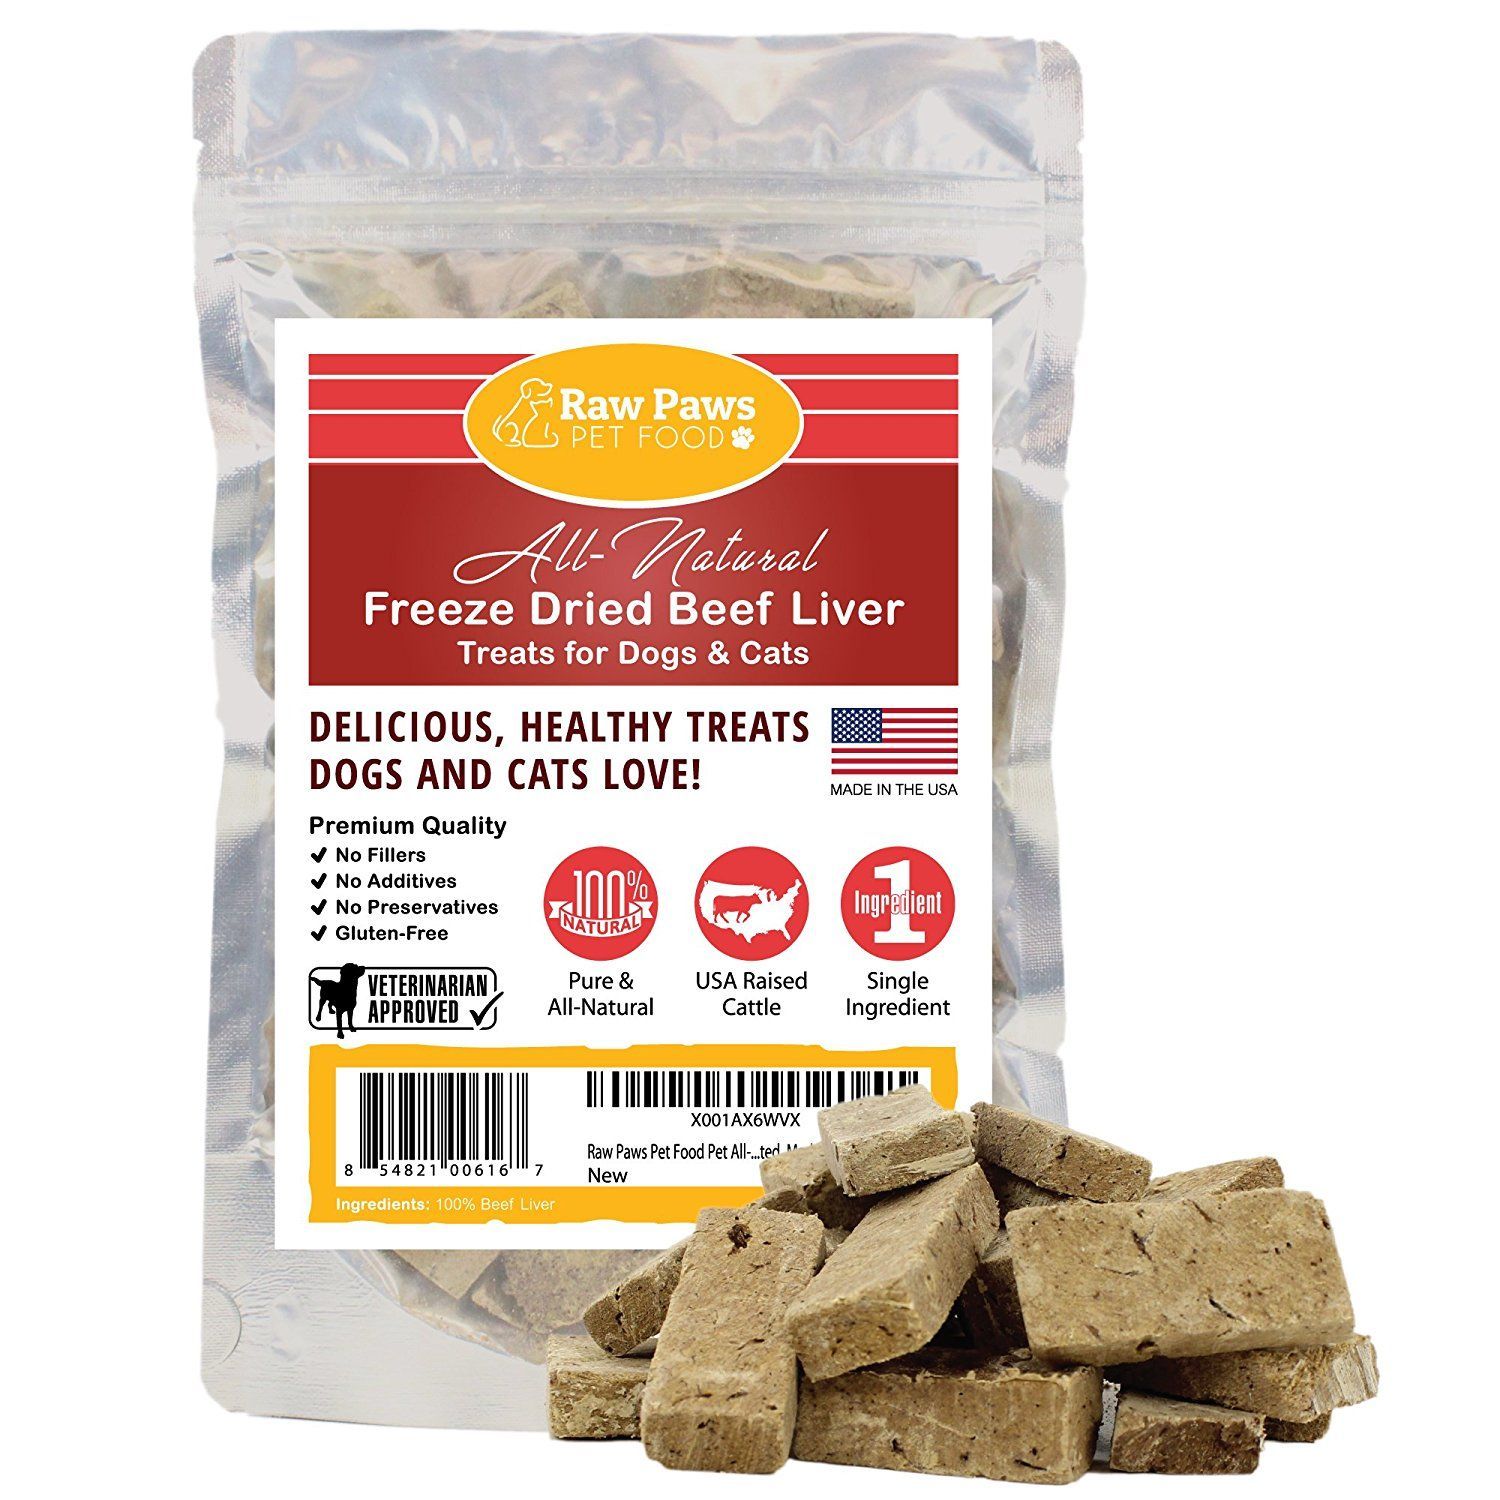 Raw Paws Pet Premium Freeze Dried Beef Liver Treats for